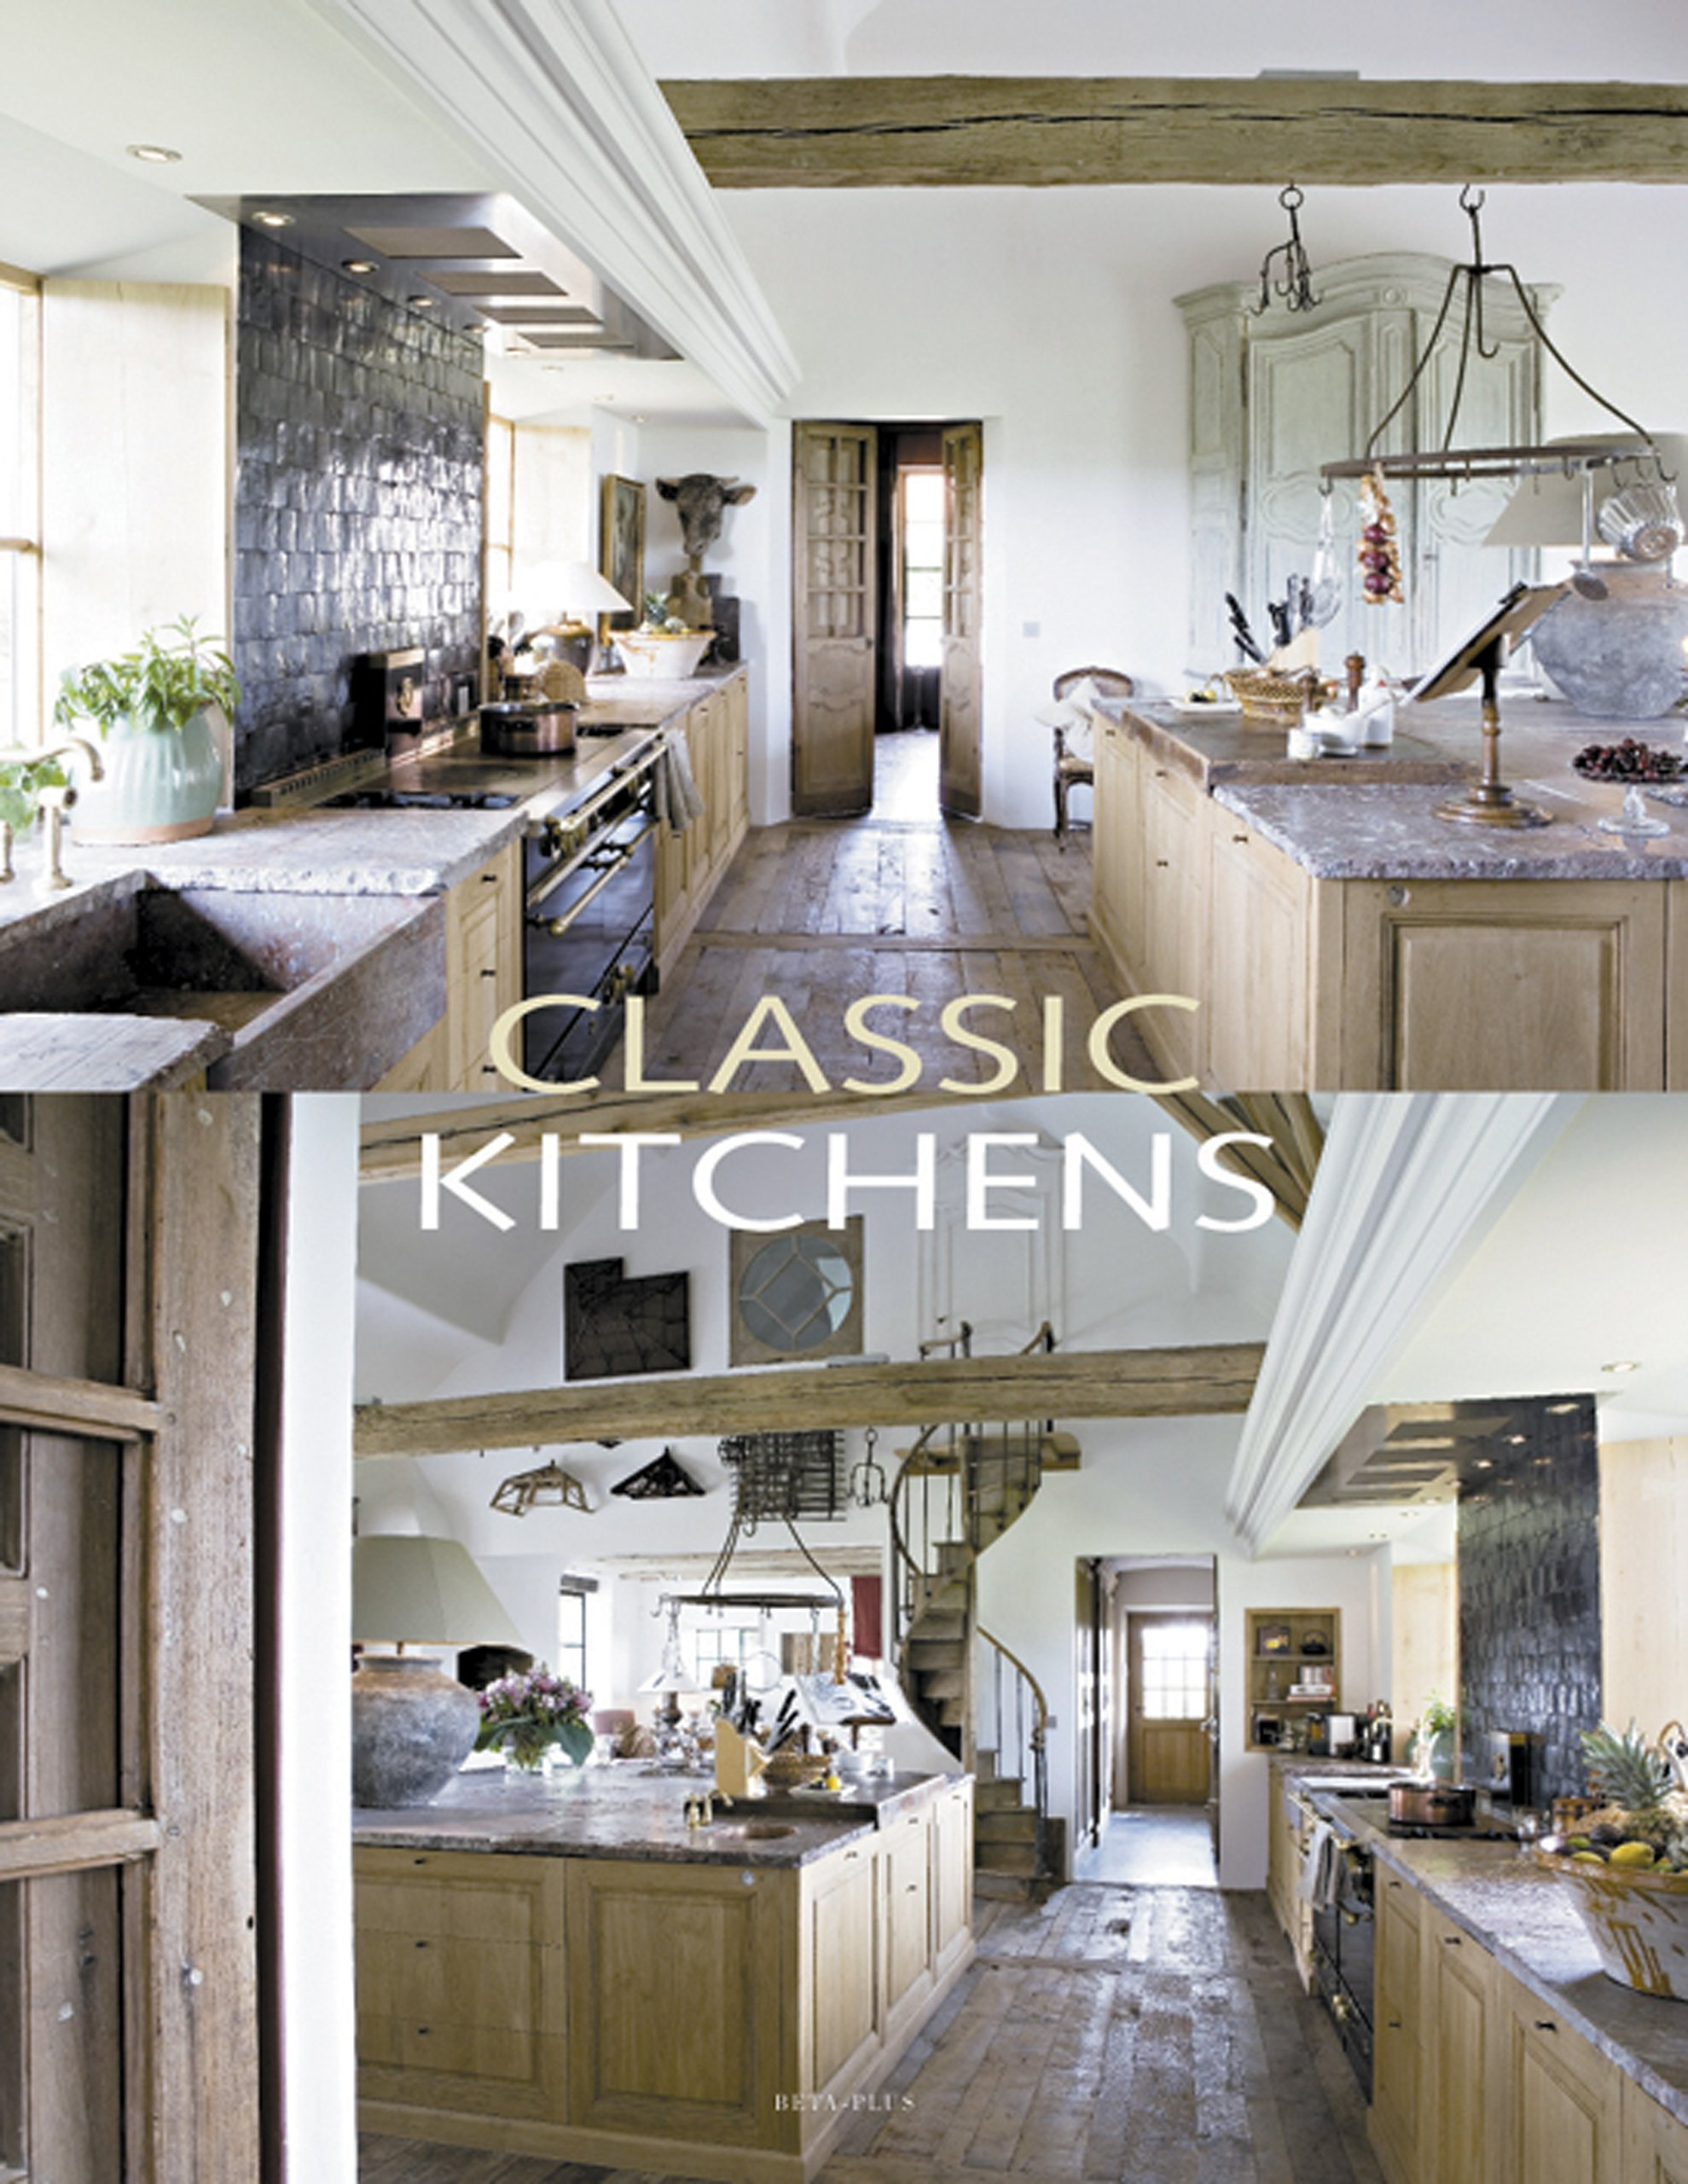 Classic Kitchens Beta Plus Amazon Books